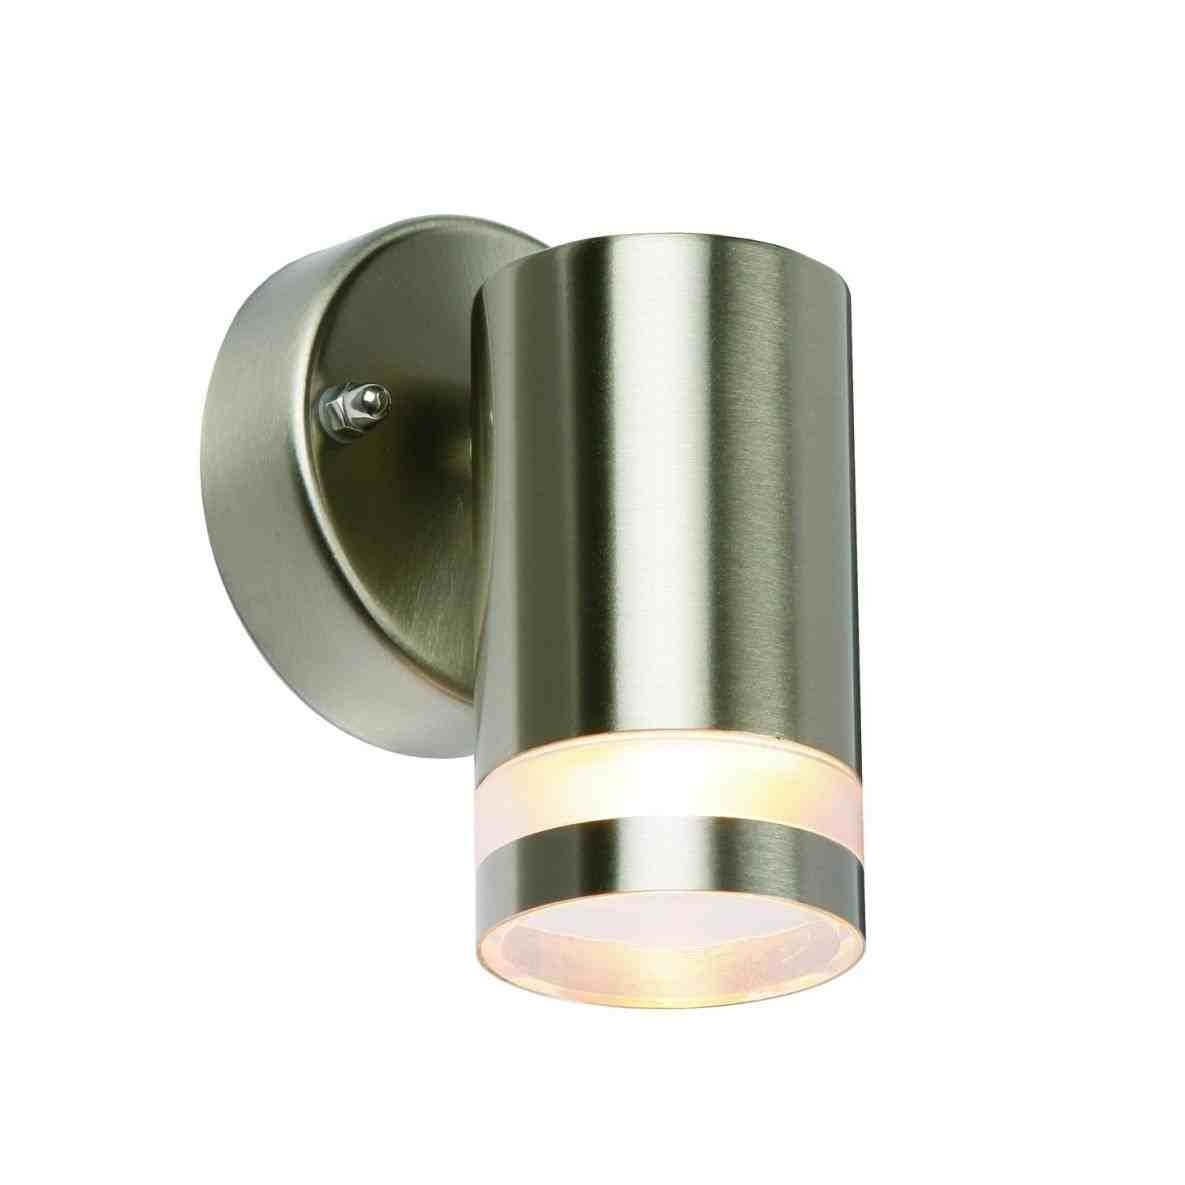 Lantern Lowes Rhafterpartyclubcom Led Outdoor Wall Light Photocell With Led Outdoor Wall Lights With Photocell (View 6 of 15)